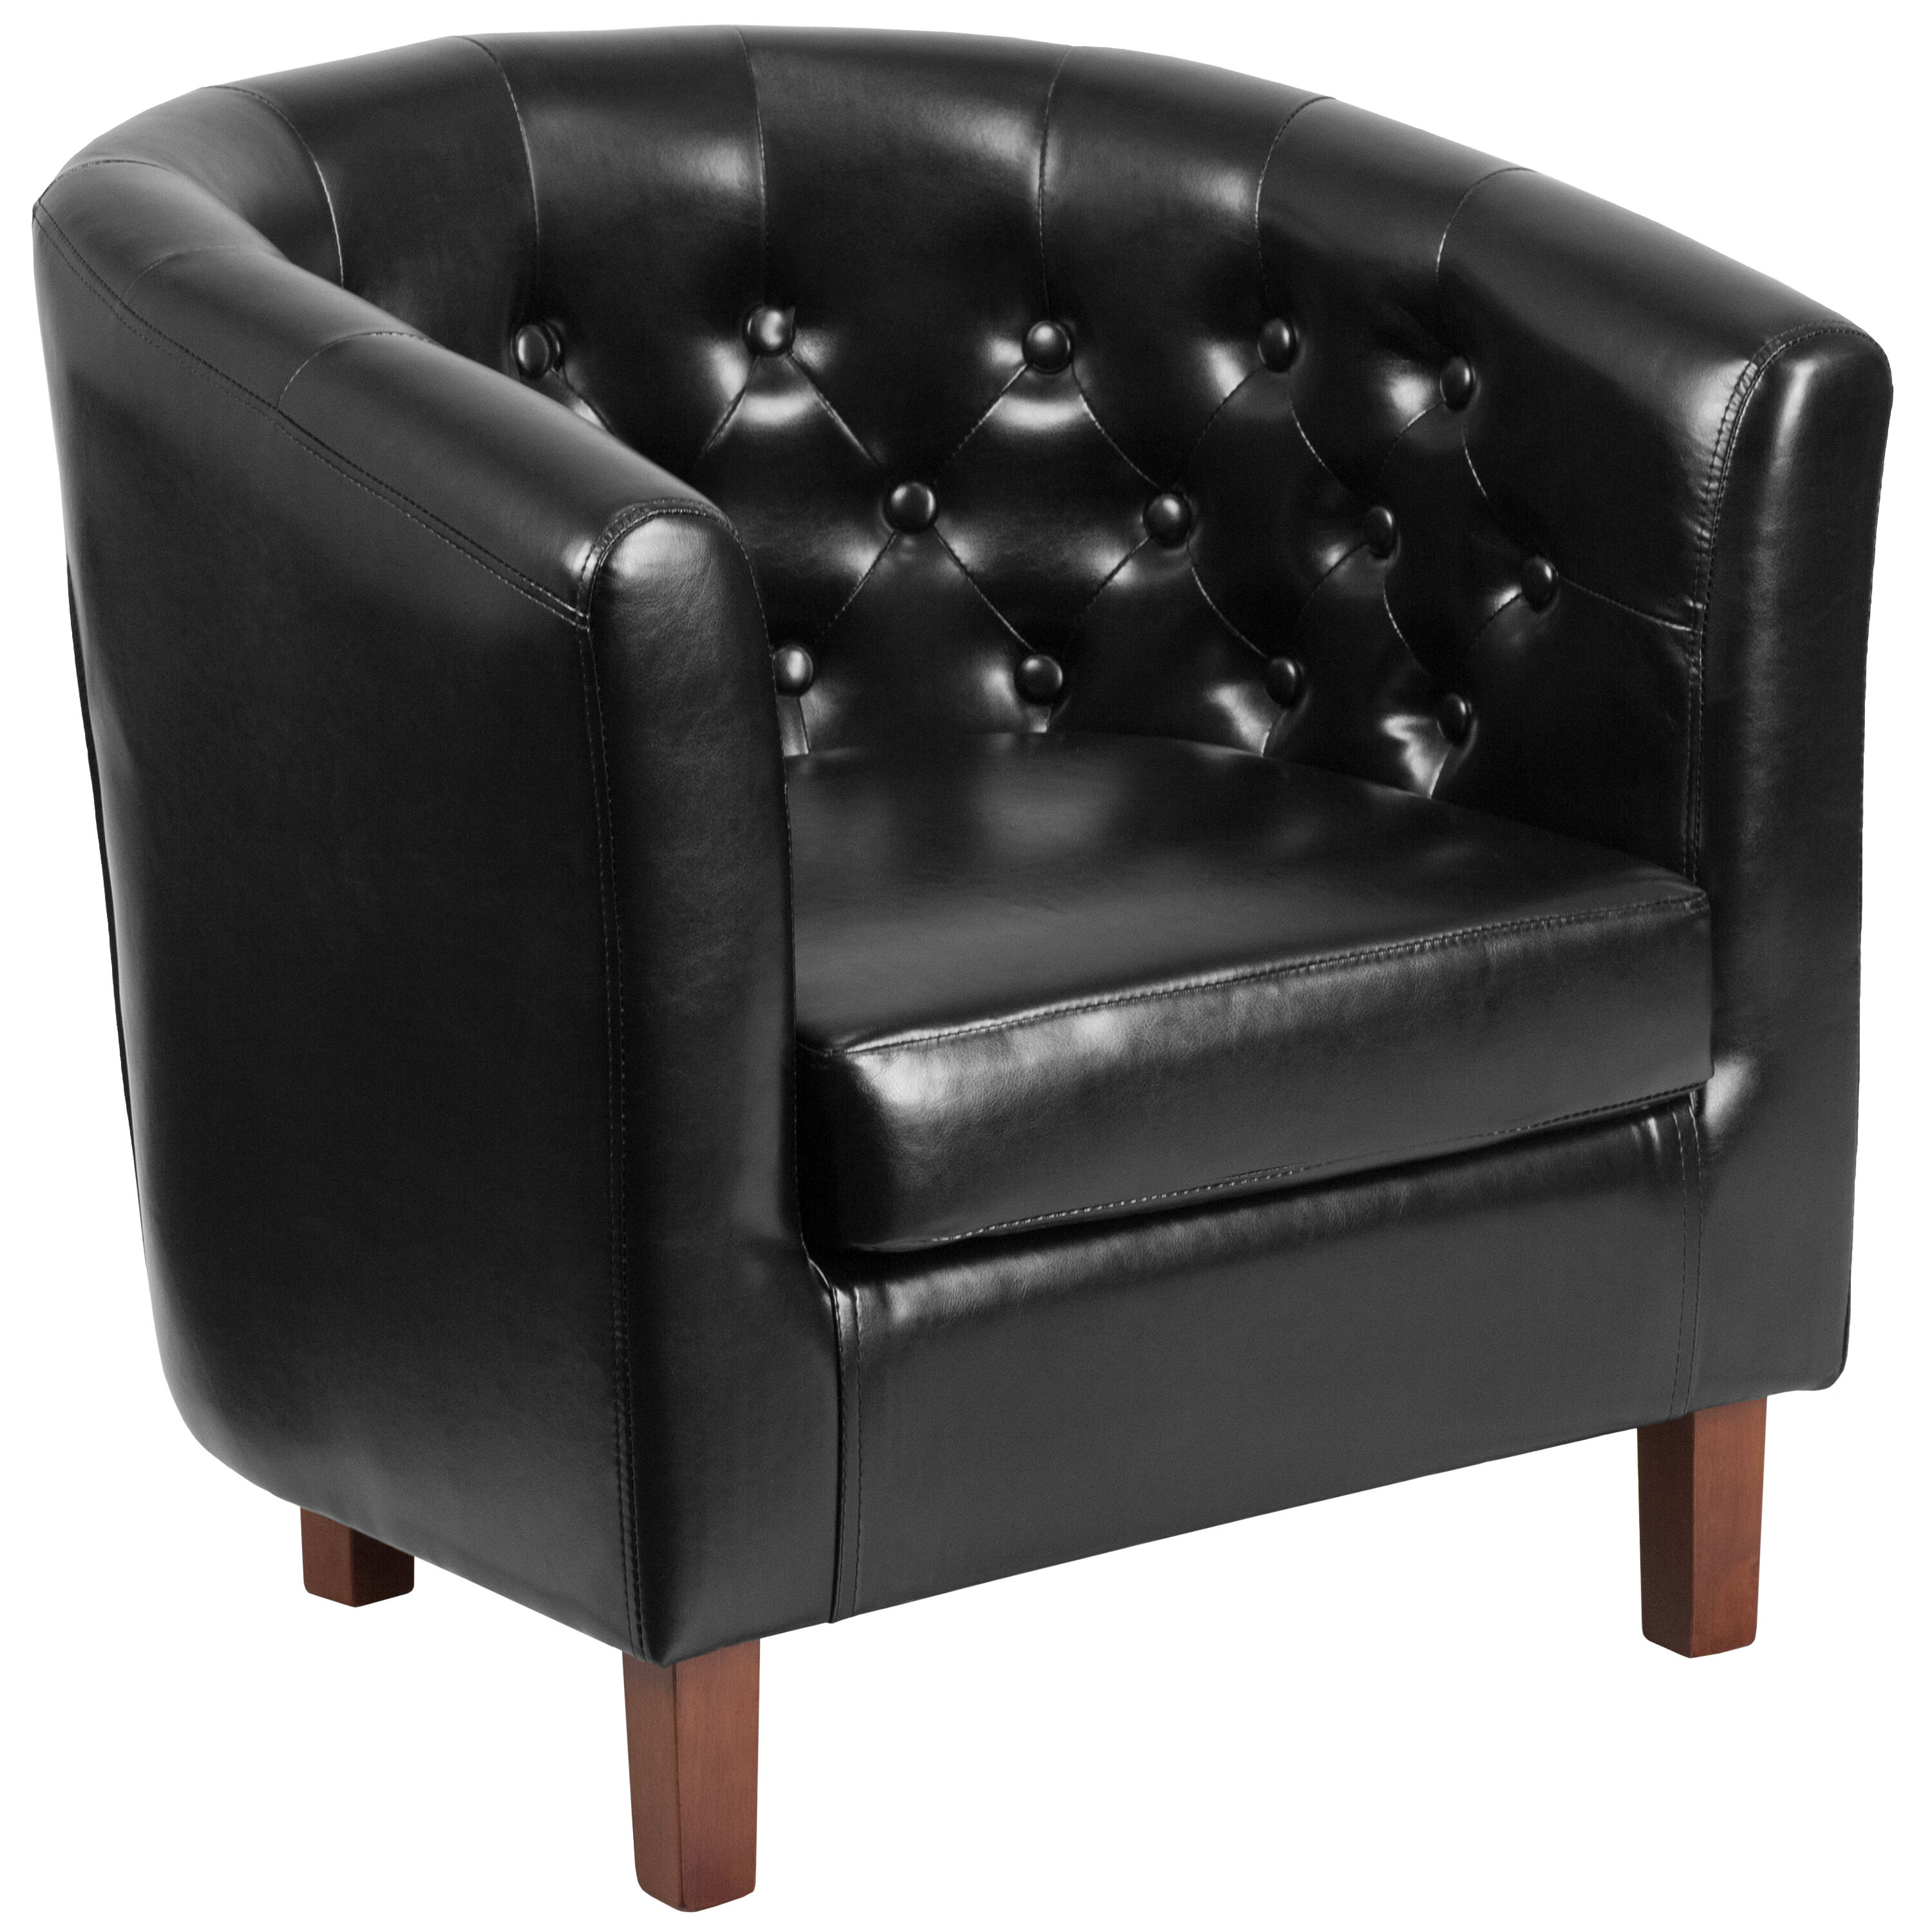 ... Our HERCULES Cranford Series Black Leather Tufted Barrel Chair Is On  Sale Now.